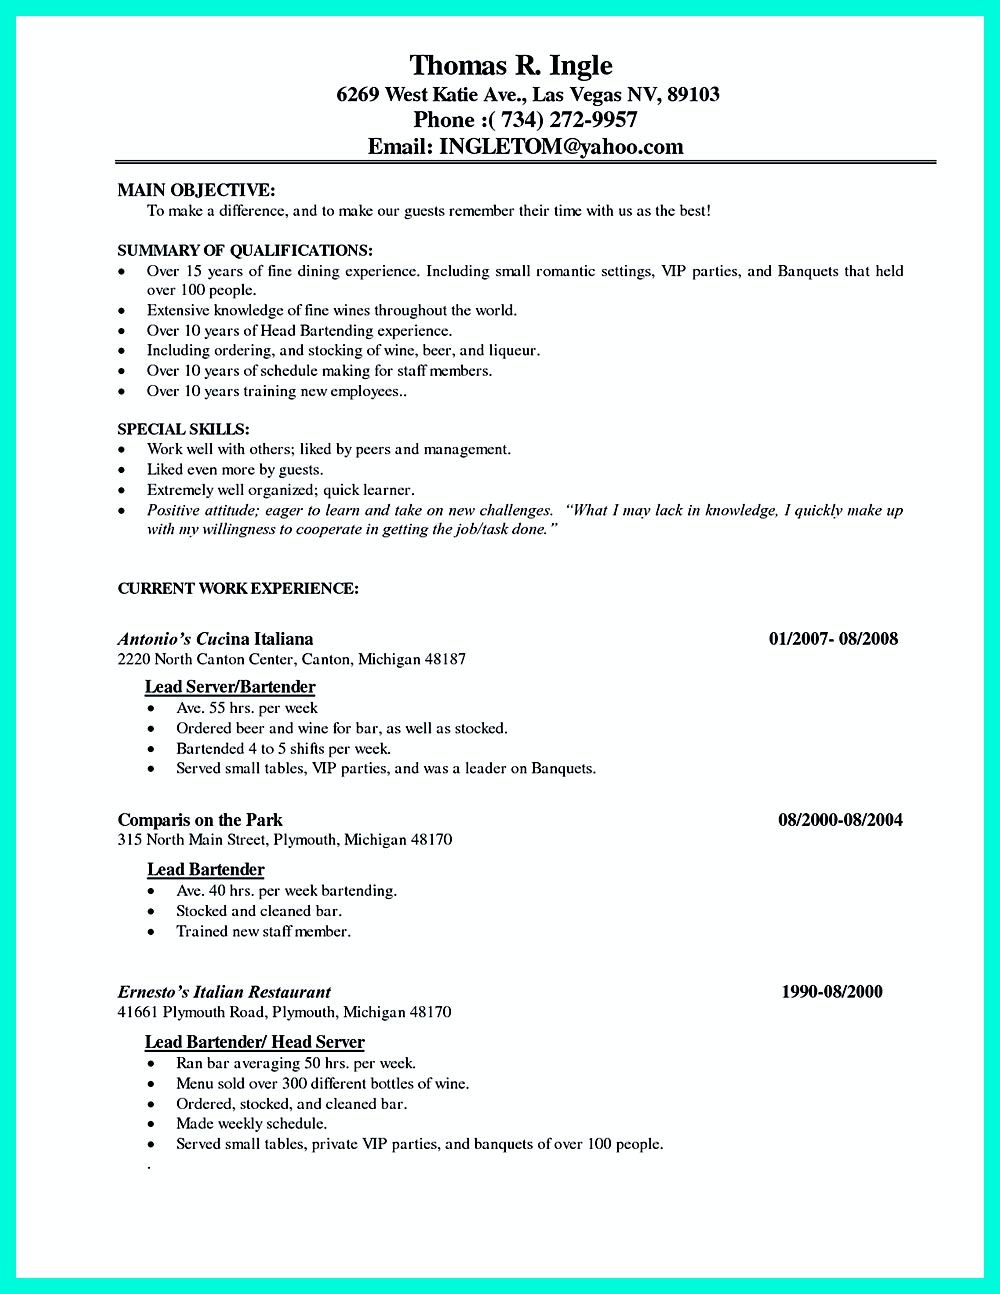 in convincing the caf or restaurant you must write your ability in waitress ability cocktail waitress resume samples and cocktail server resume examples - Cocktail Waitress Resume Sample